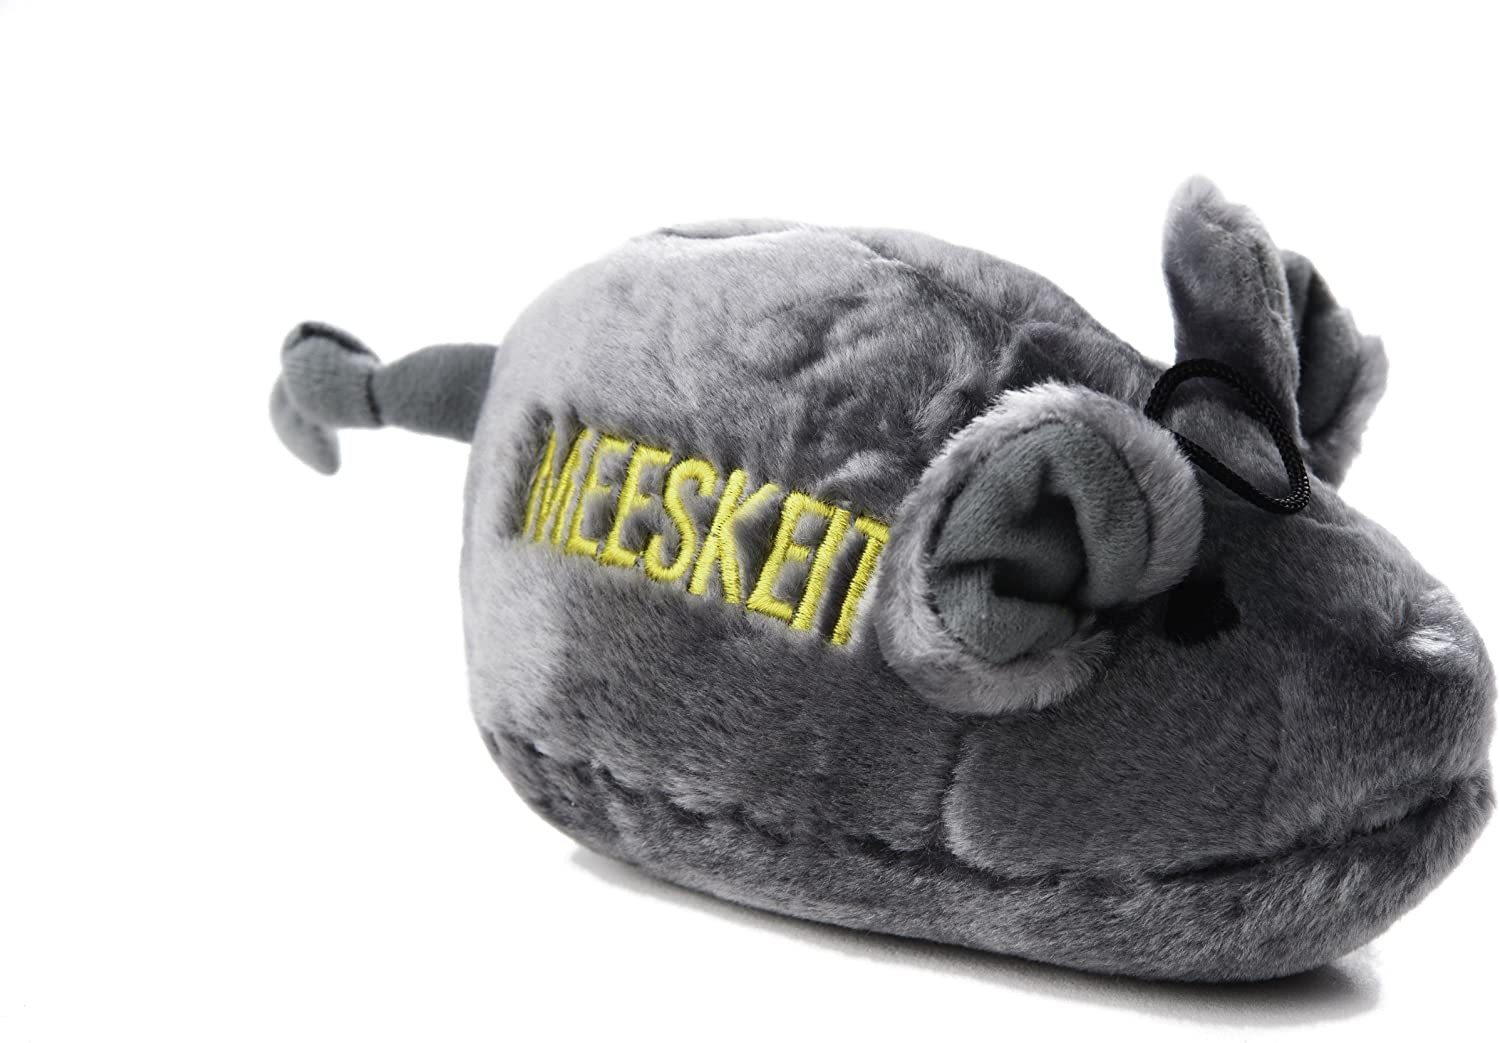 Copa Judaica Chewish Treat Meeskeit Mouse Squeak Plush Dog Toy, 8 by 4Inch